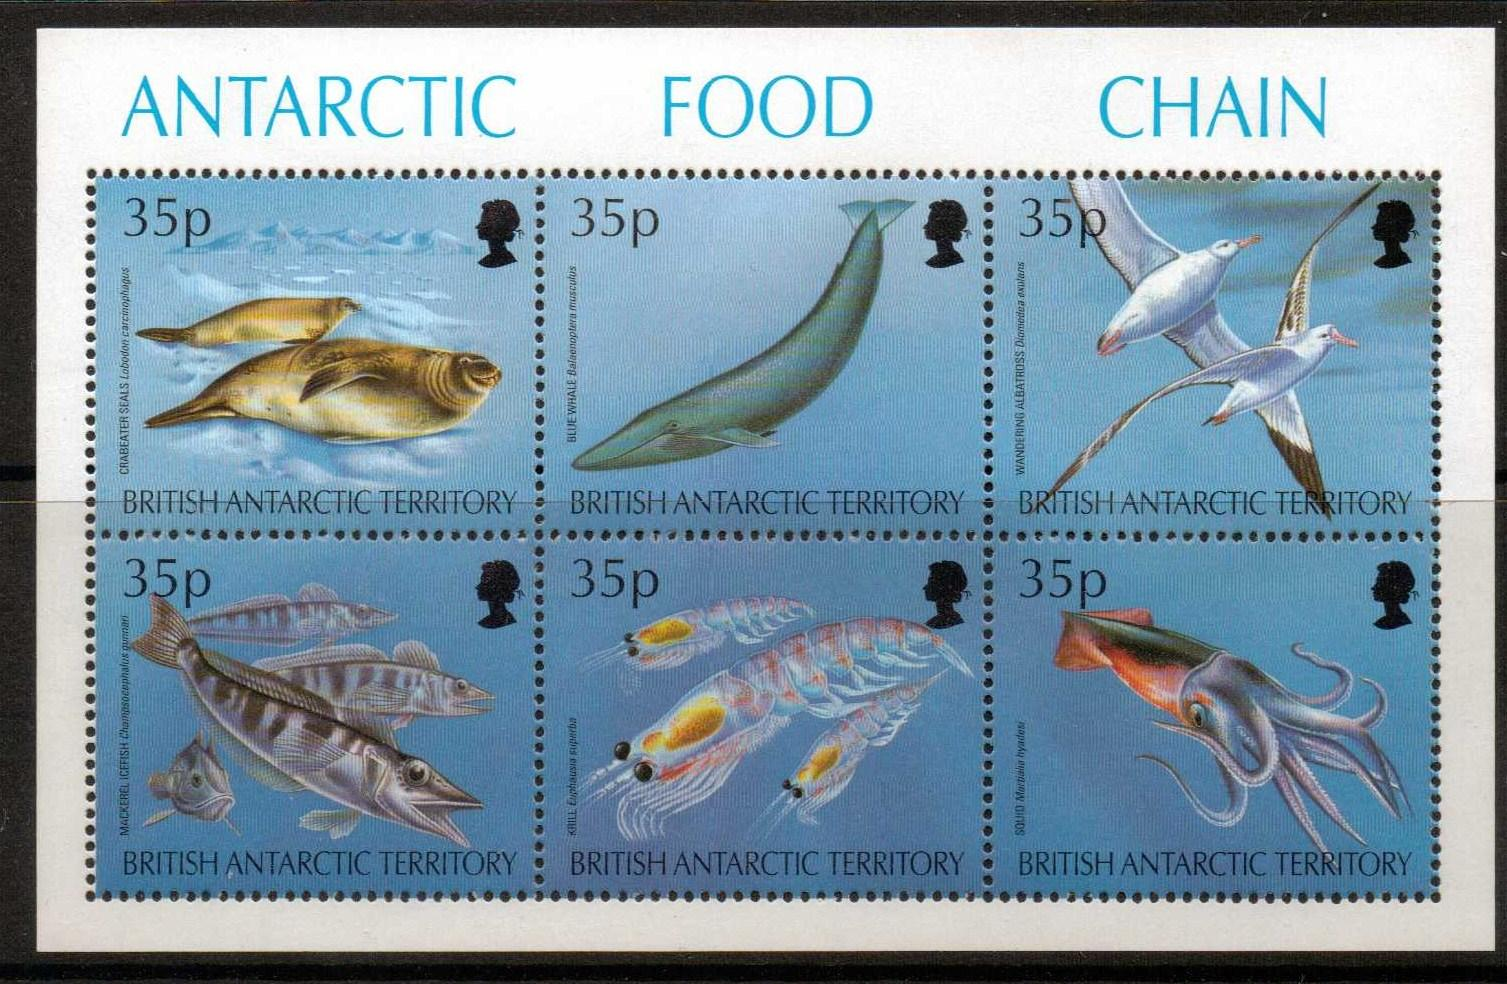 Electronics cars fashion collectibles coupons and more for Antarctic cuisine